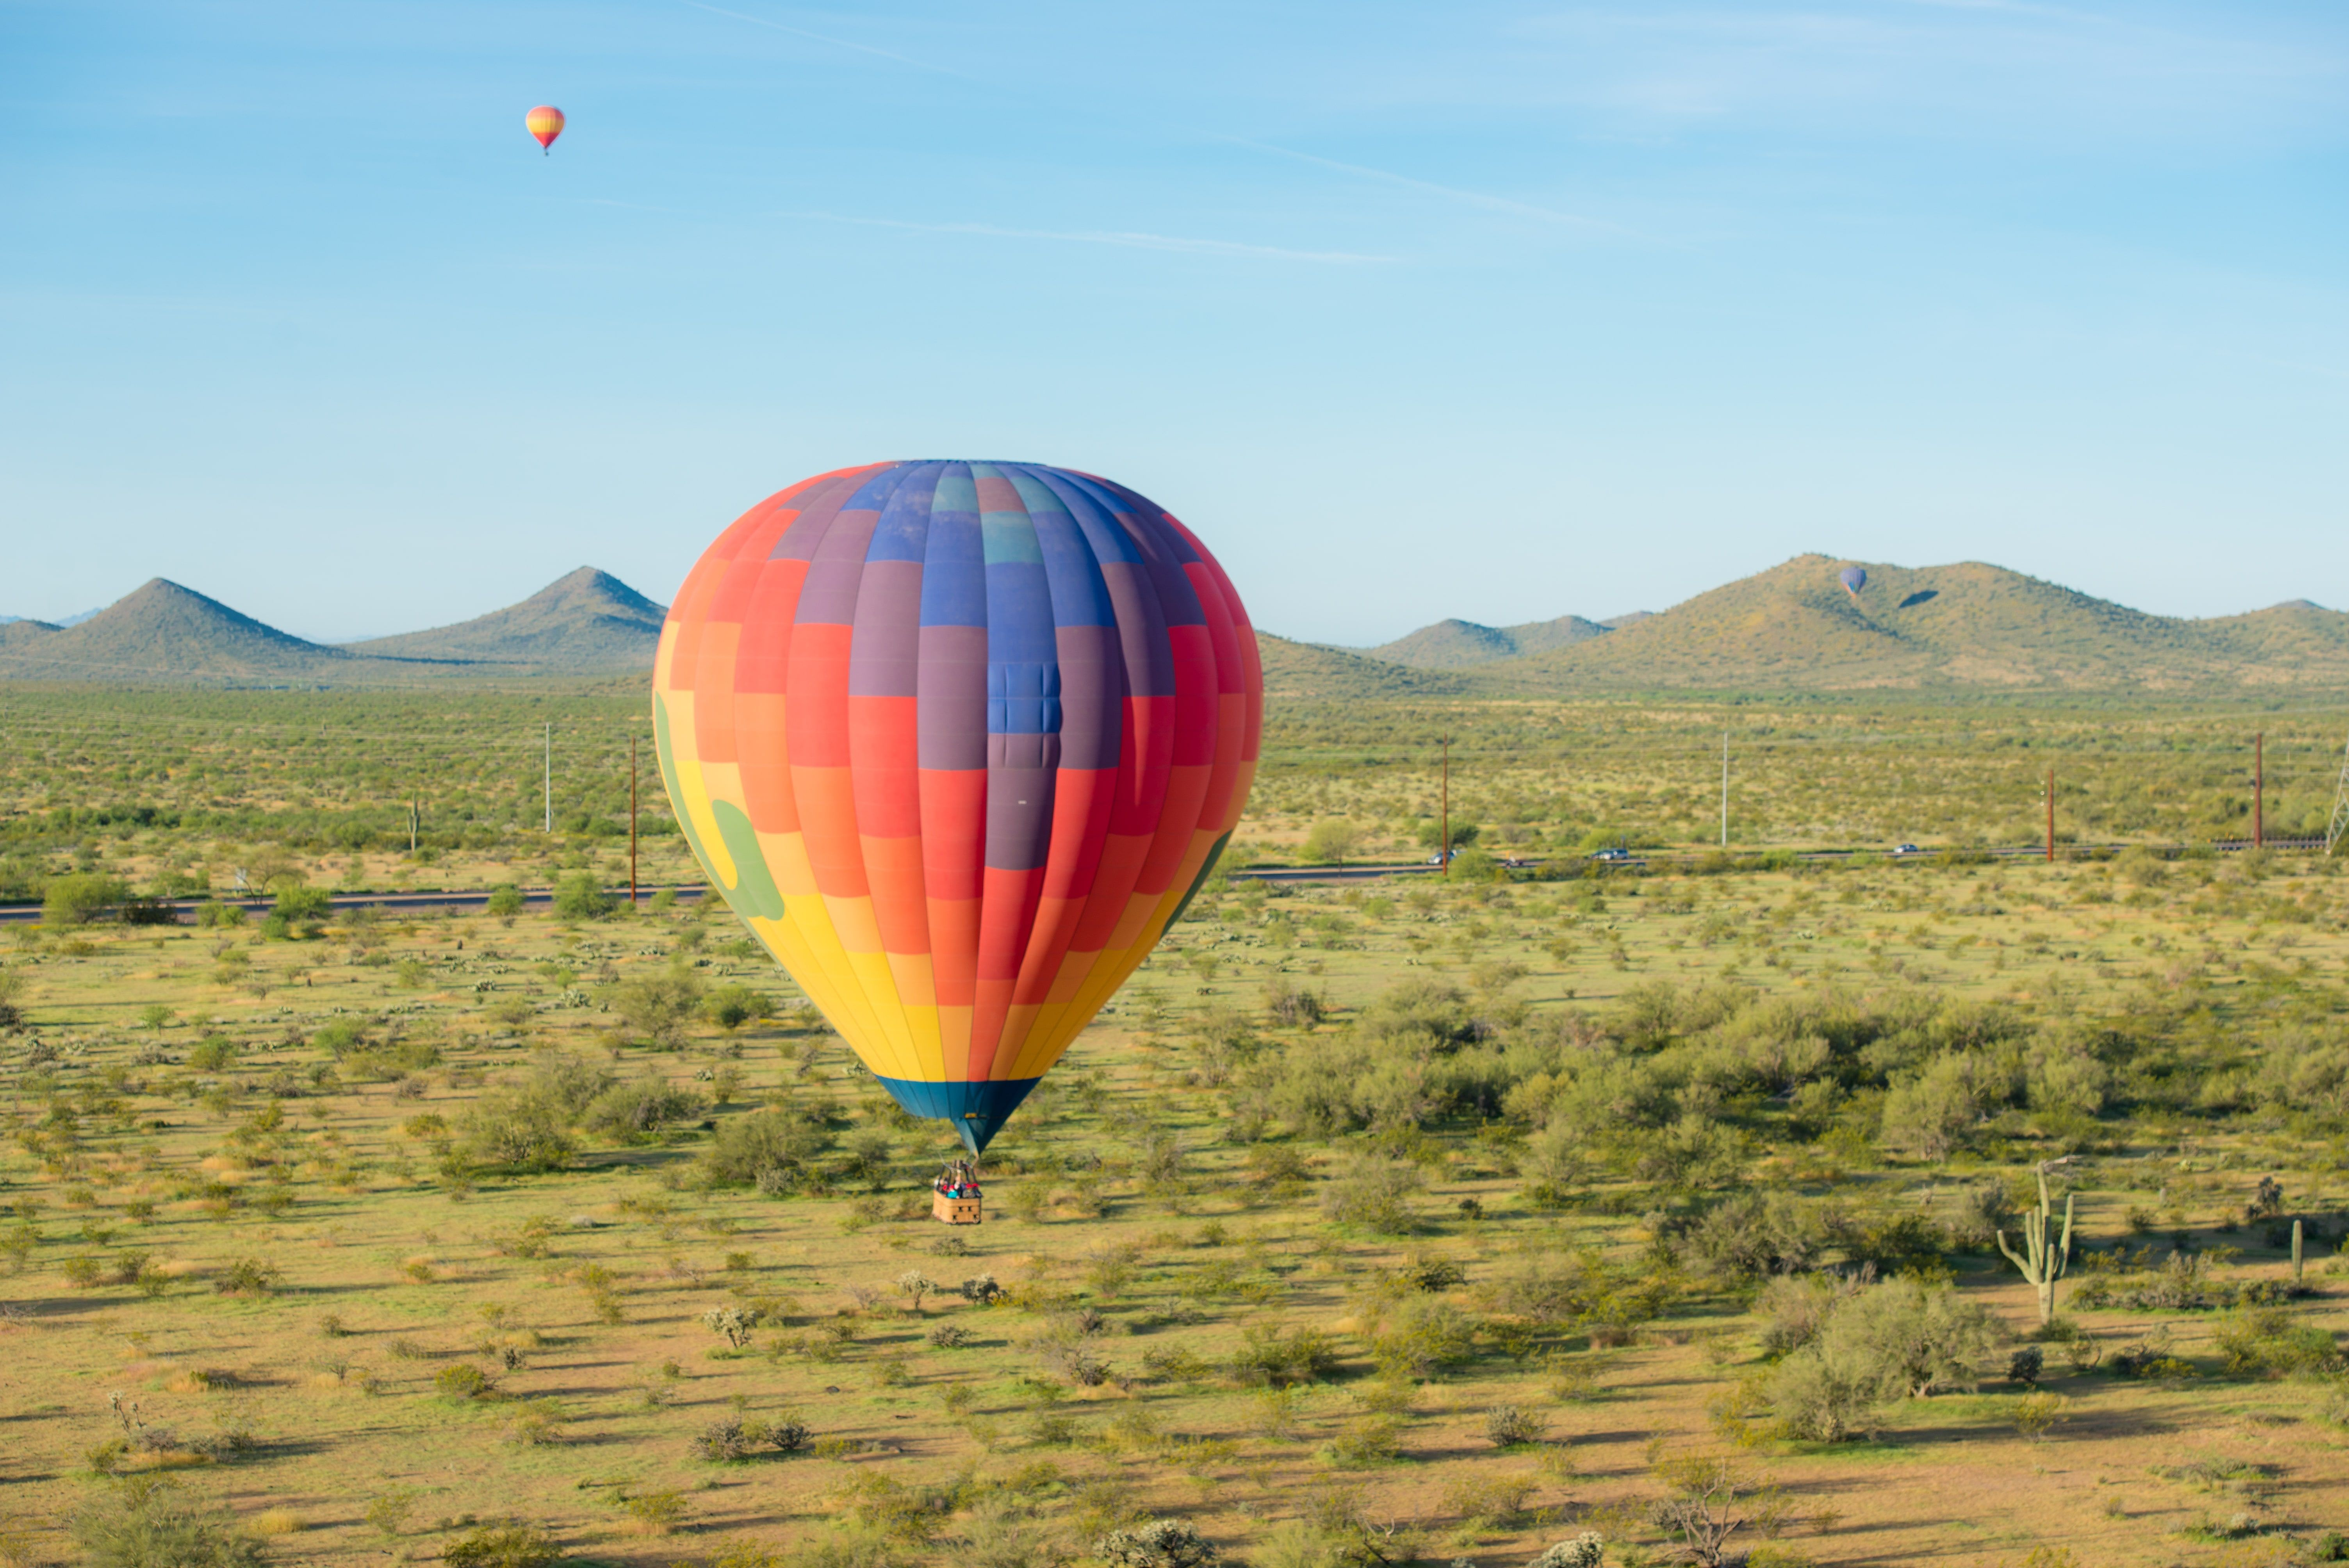 Another beautiful day for ballooning! Balloon rides